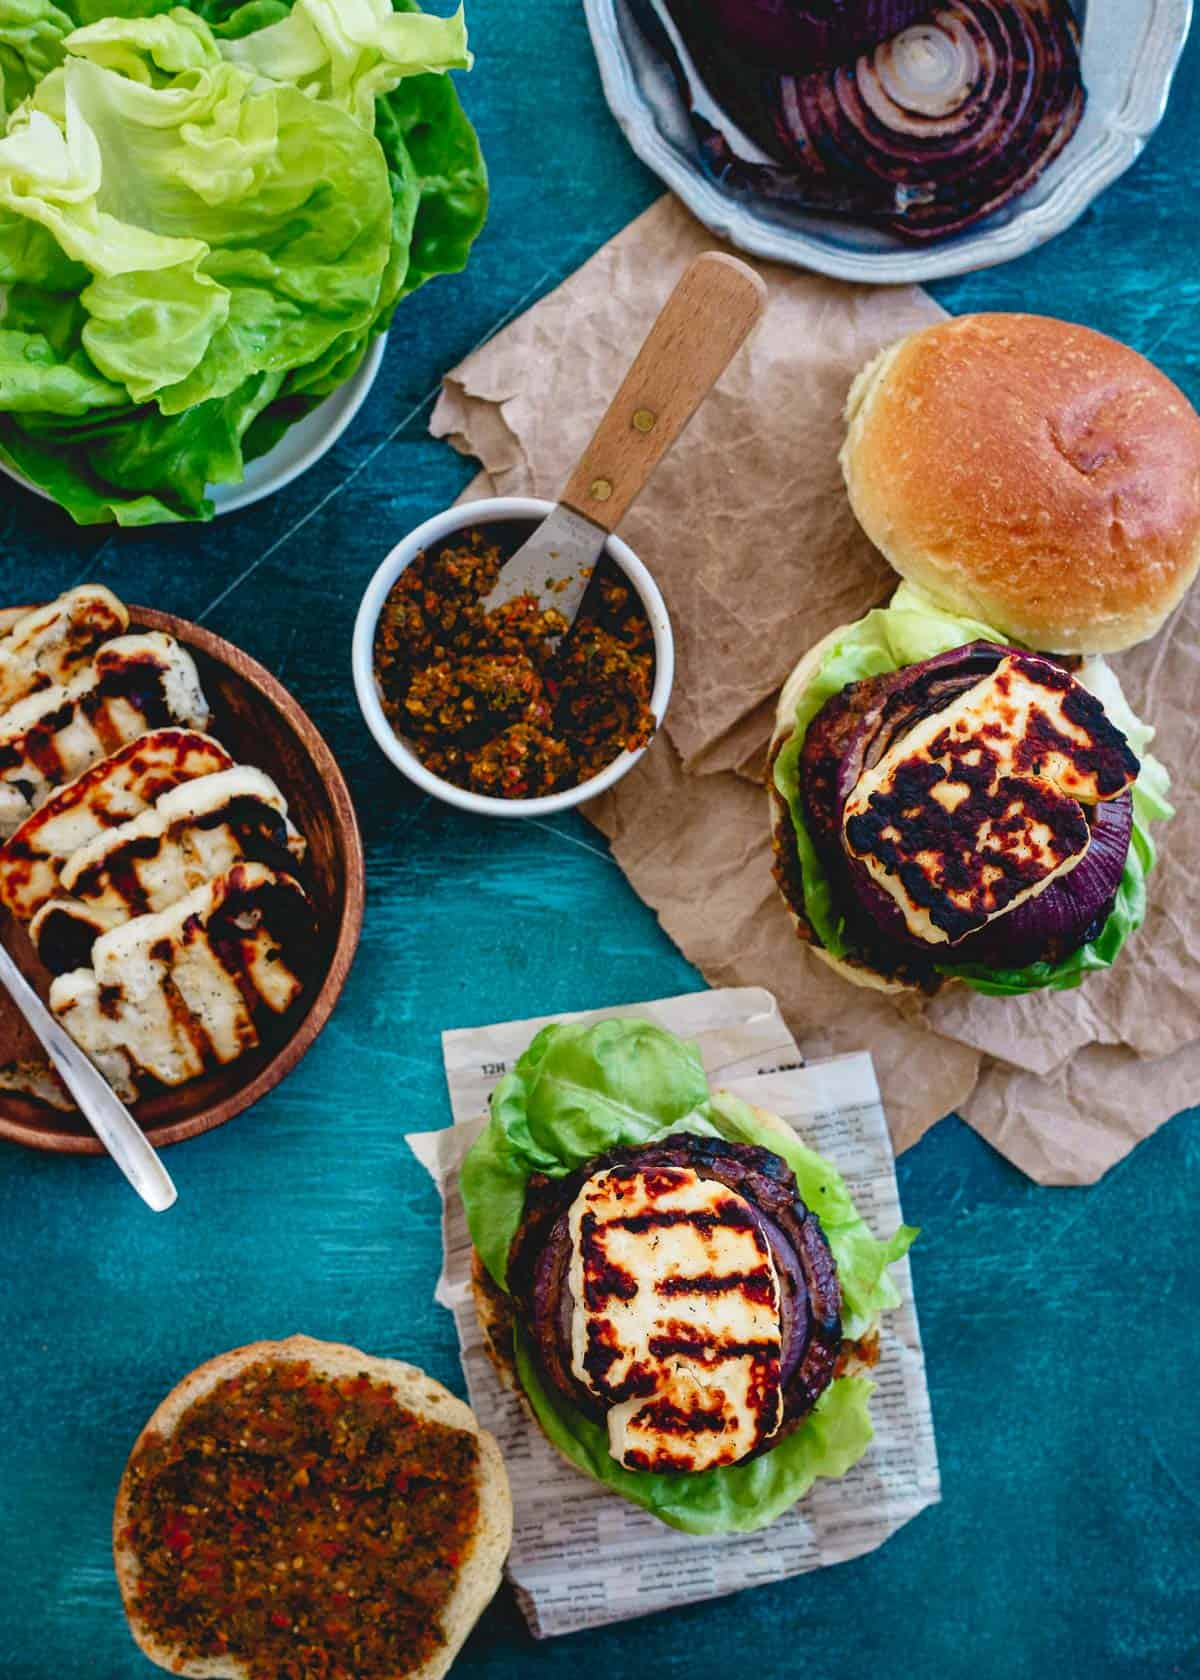 Grilled halloumi cheese takes these lamb burgers over the top for a delicious grilled summer meal!